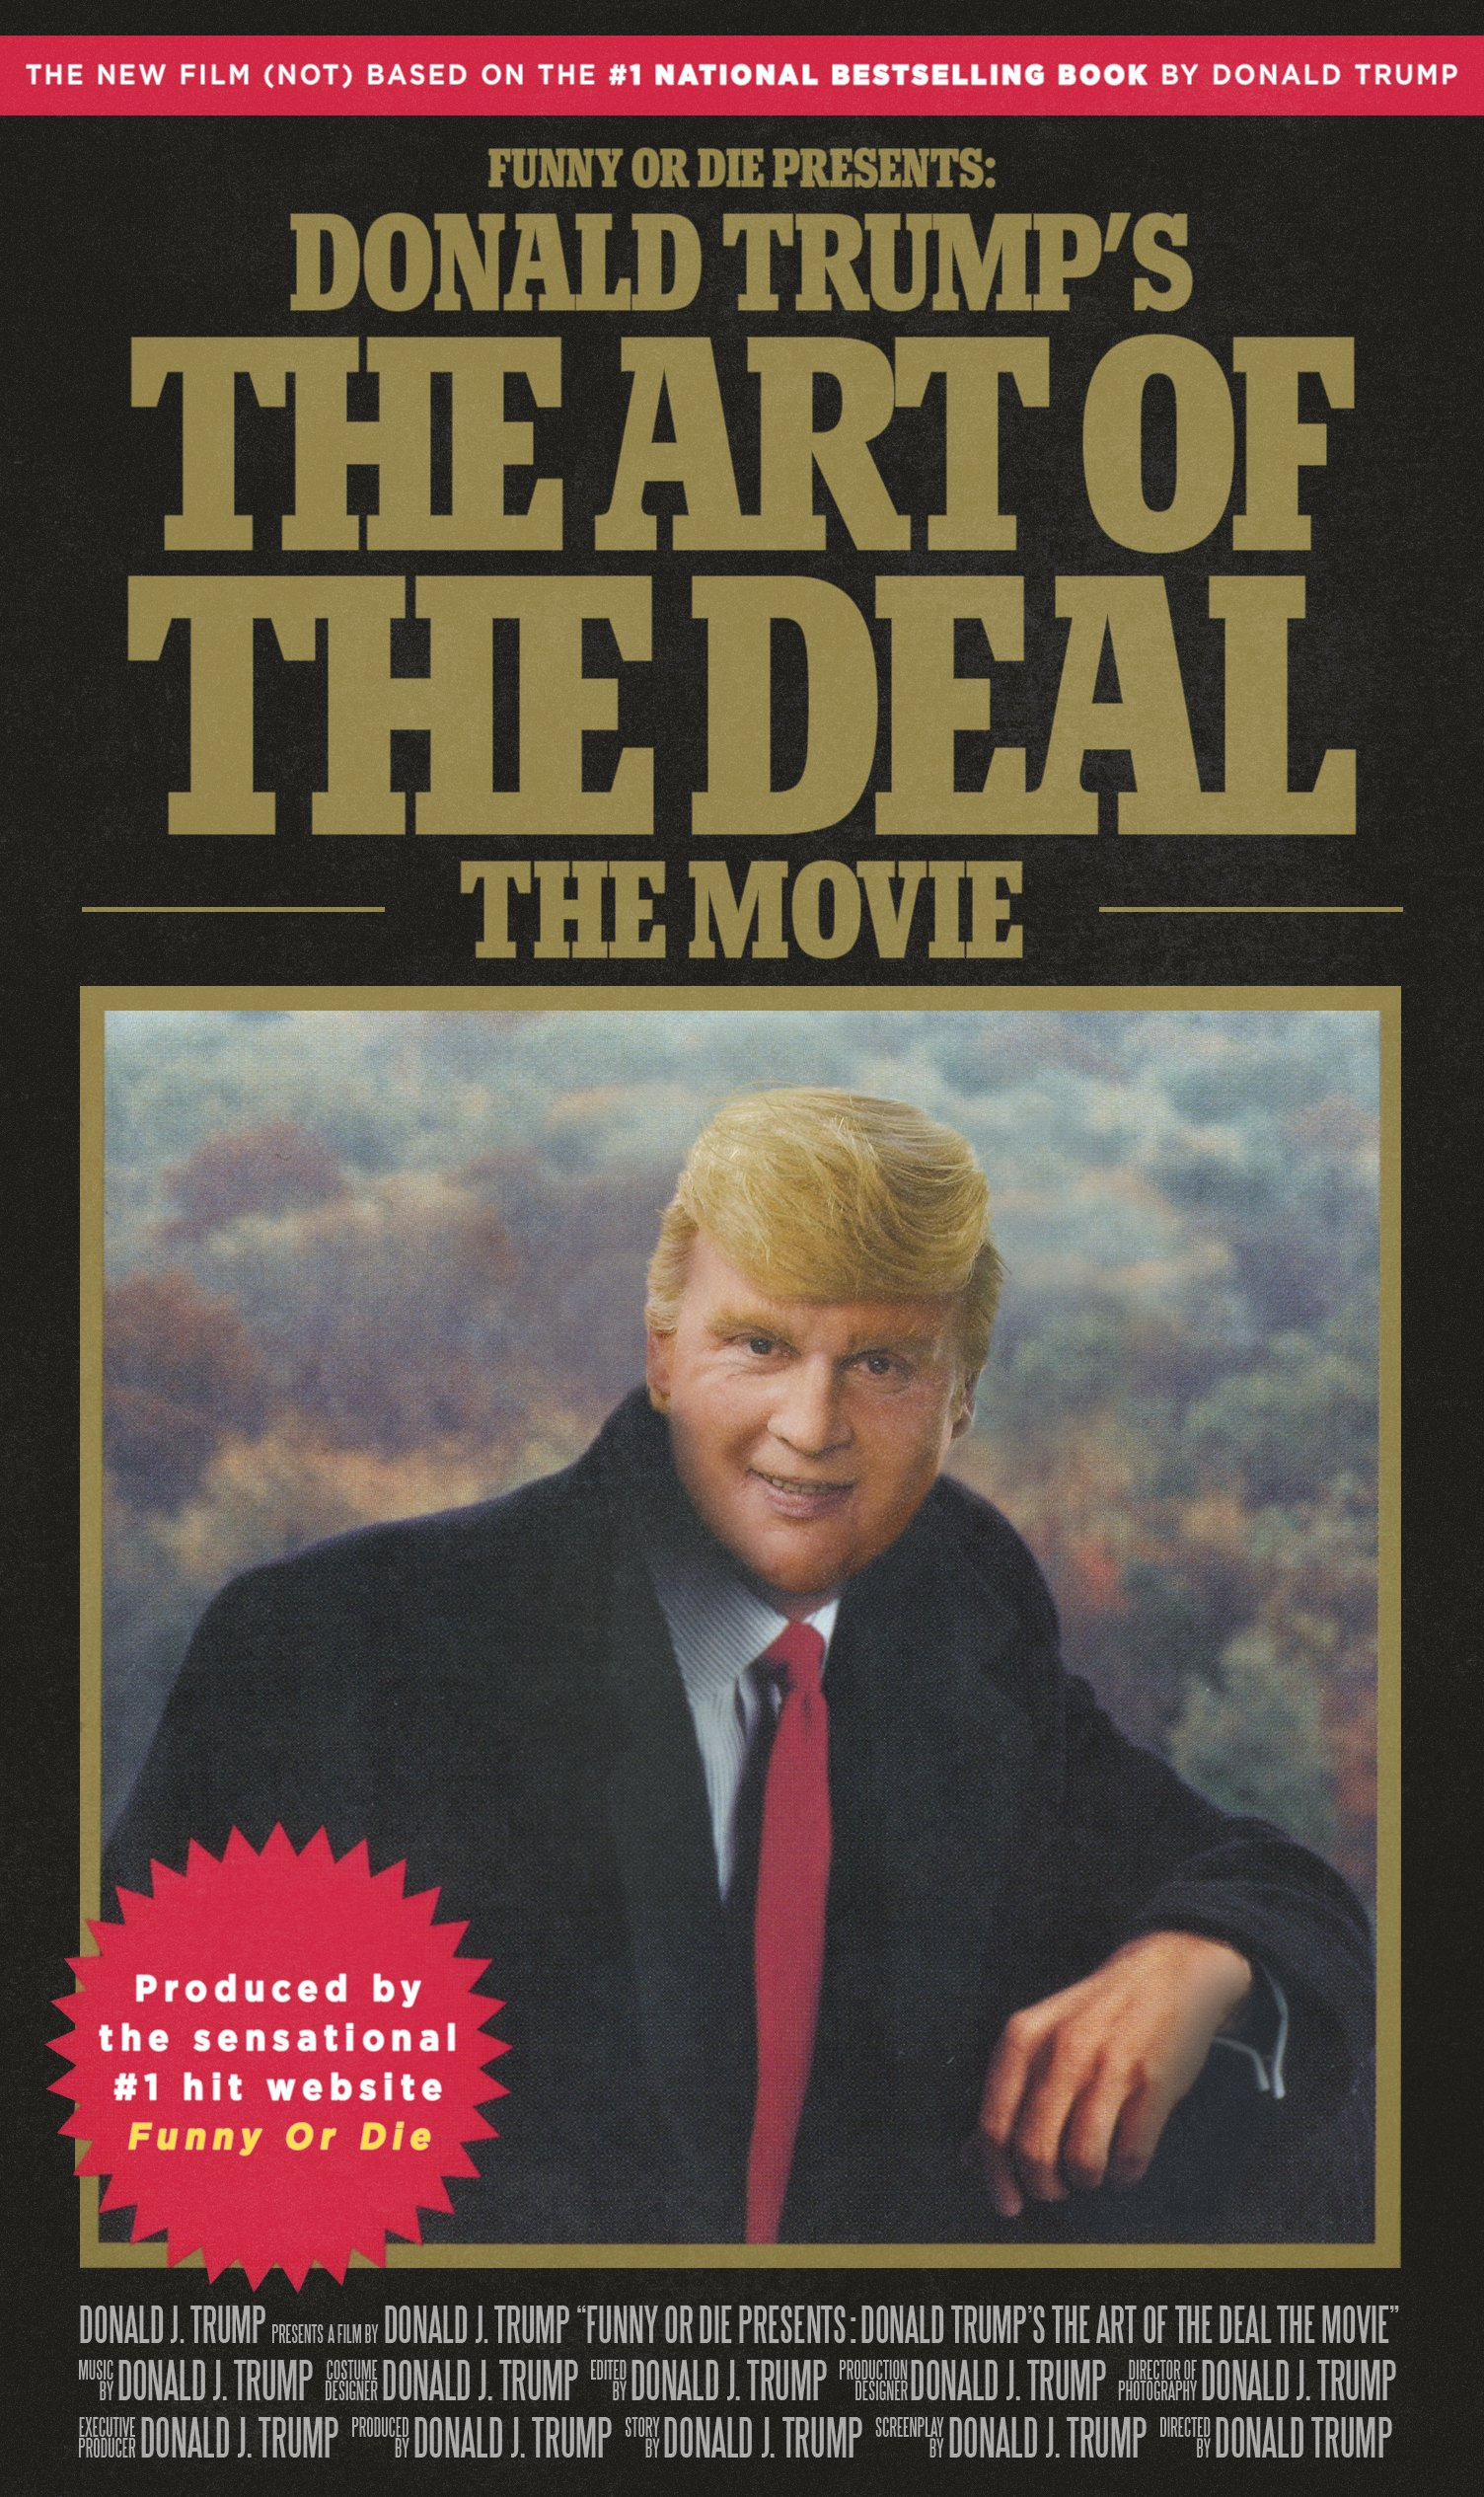 What films did Donald Trump film-making of the President of the USA play in? 9 films with the most famous roles 30